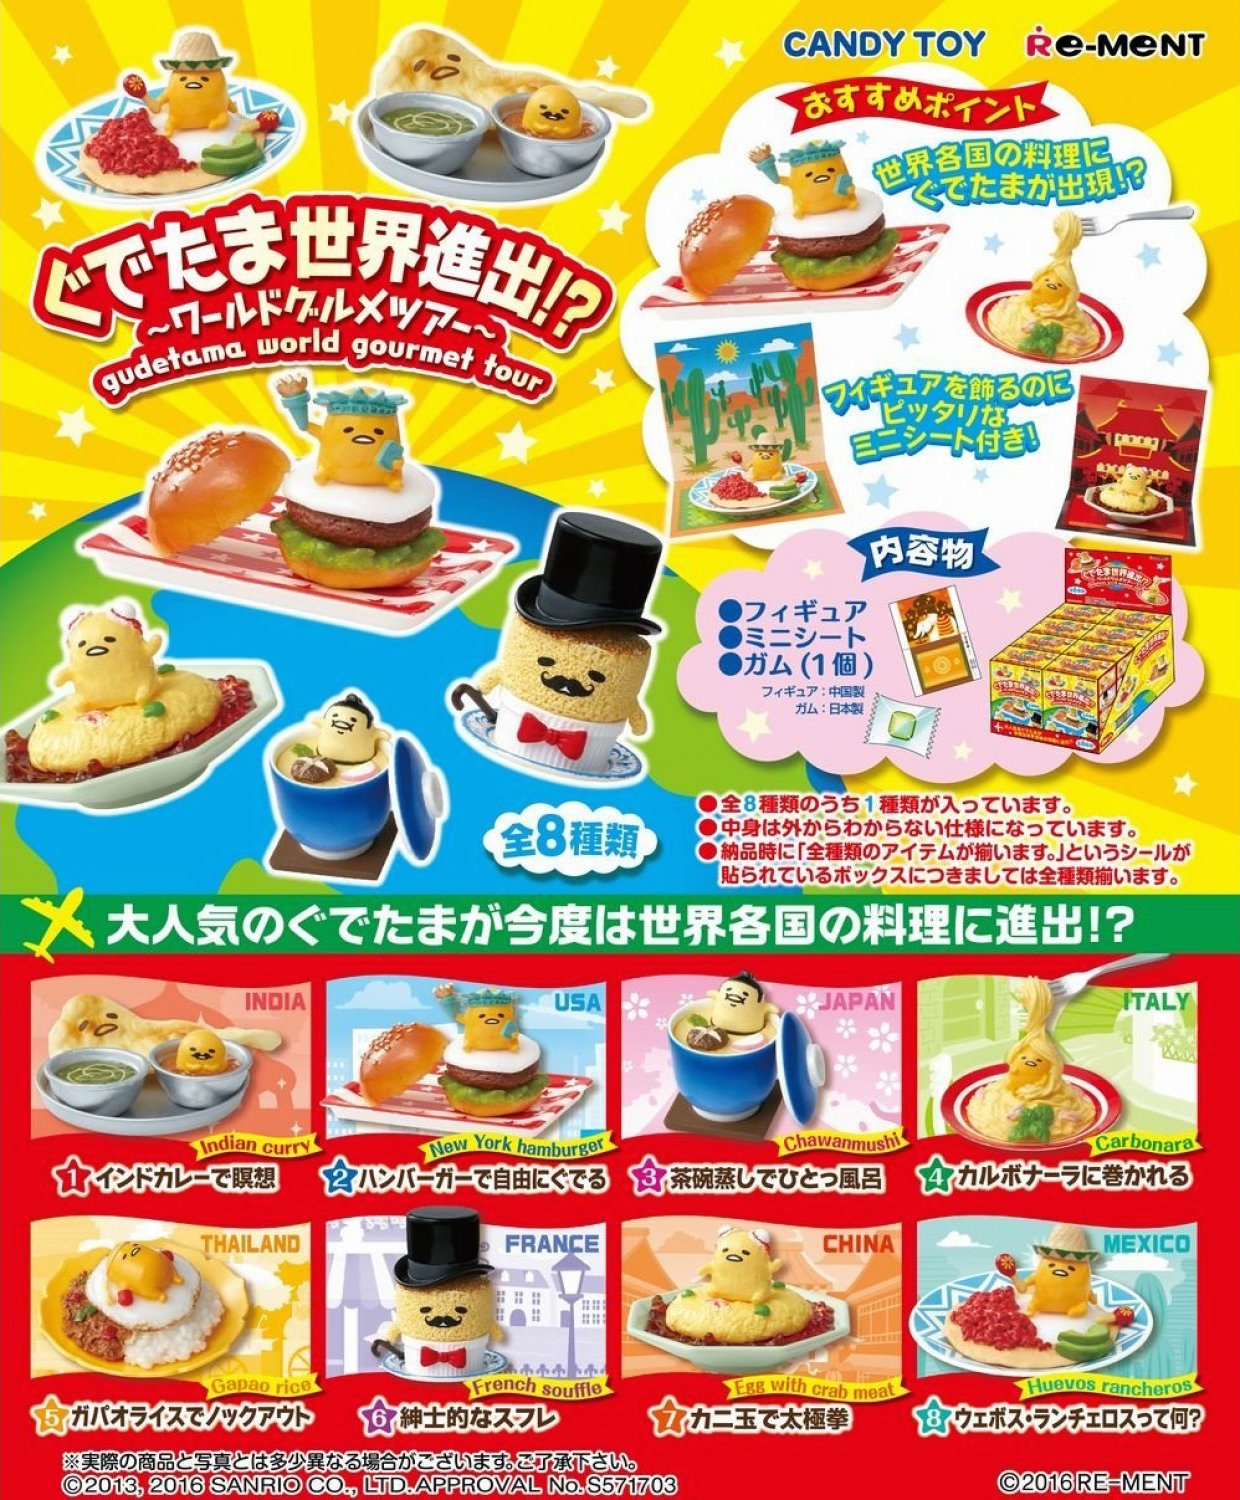 gudetama-global-expansion-world-gourmet-tour-set-of-8-pieces-478339.2